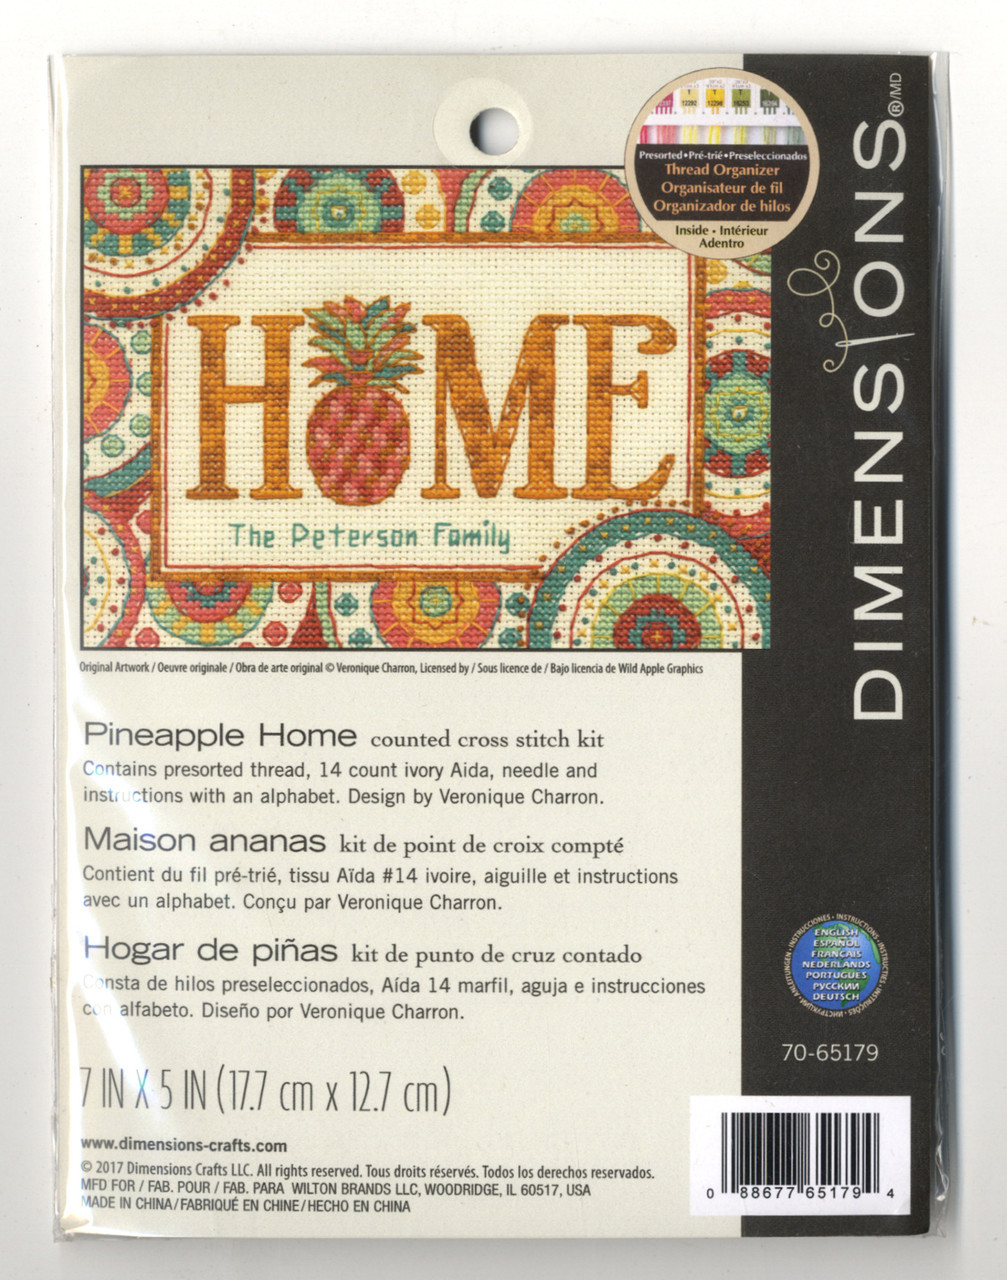 Dimensions - Pineapple Home